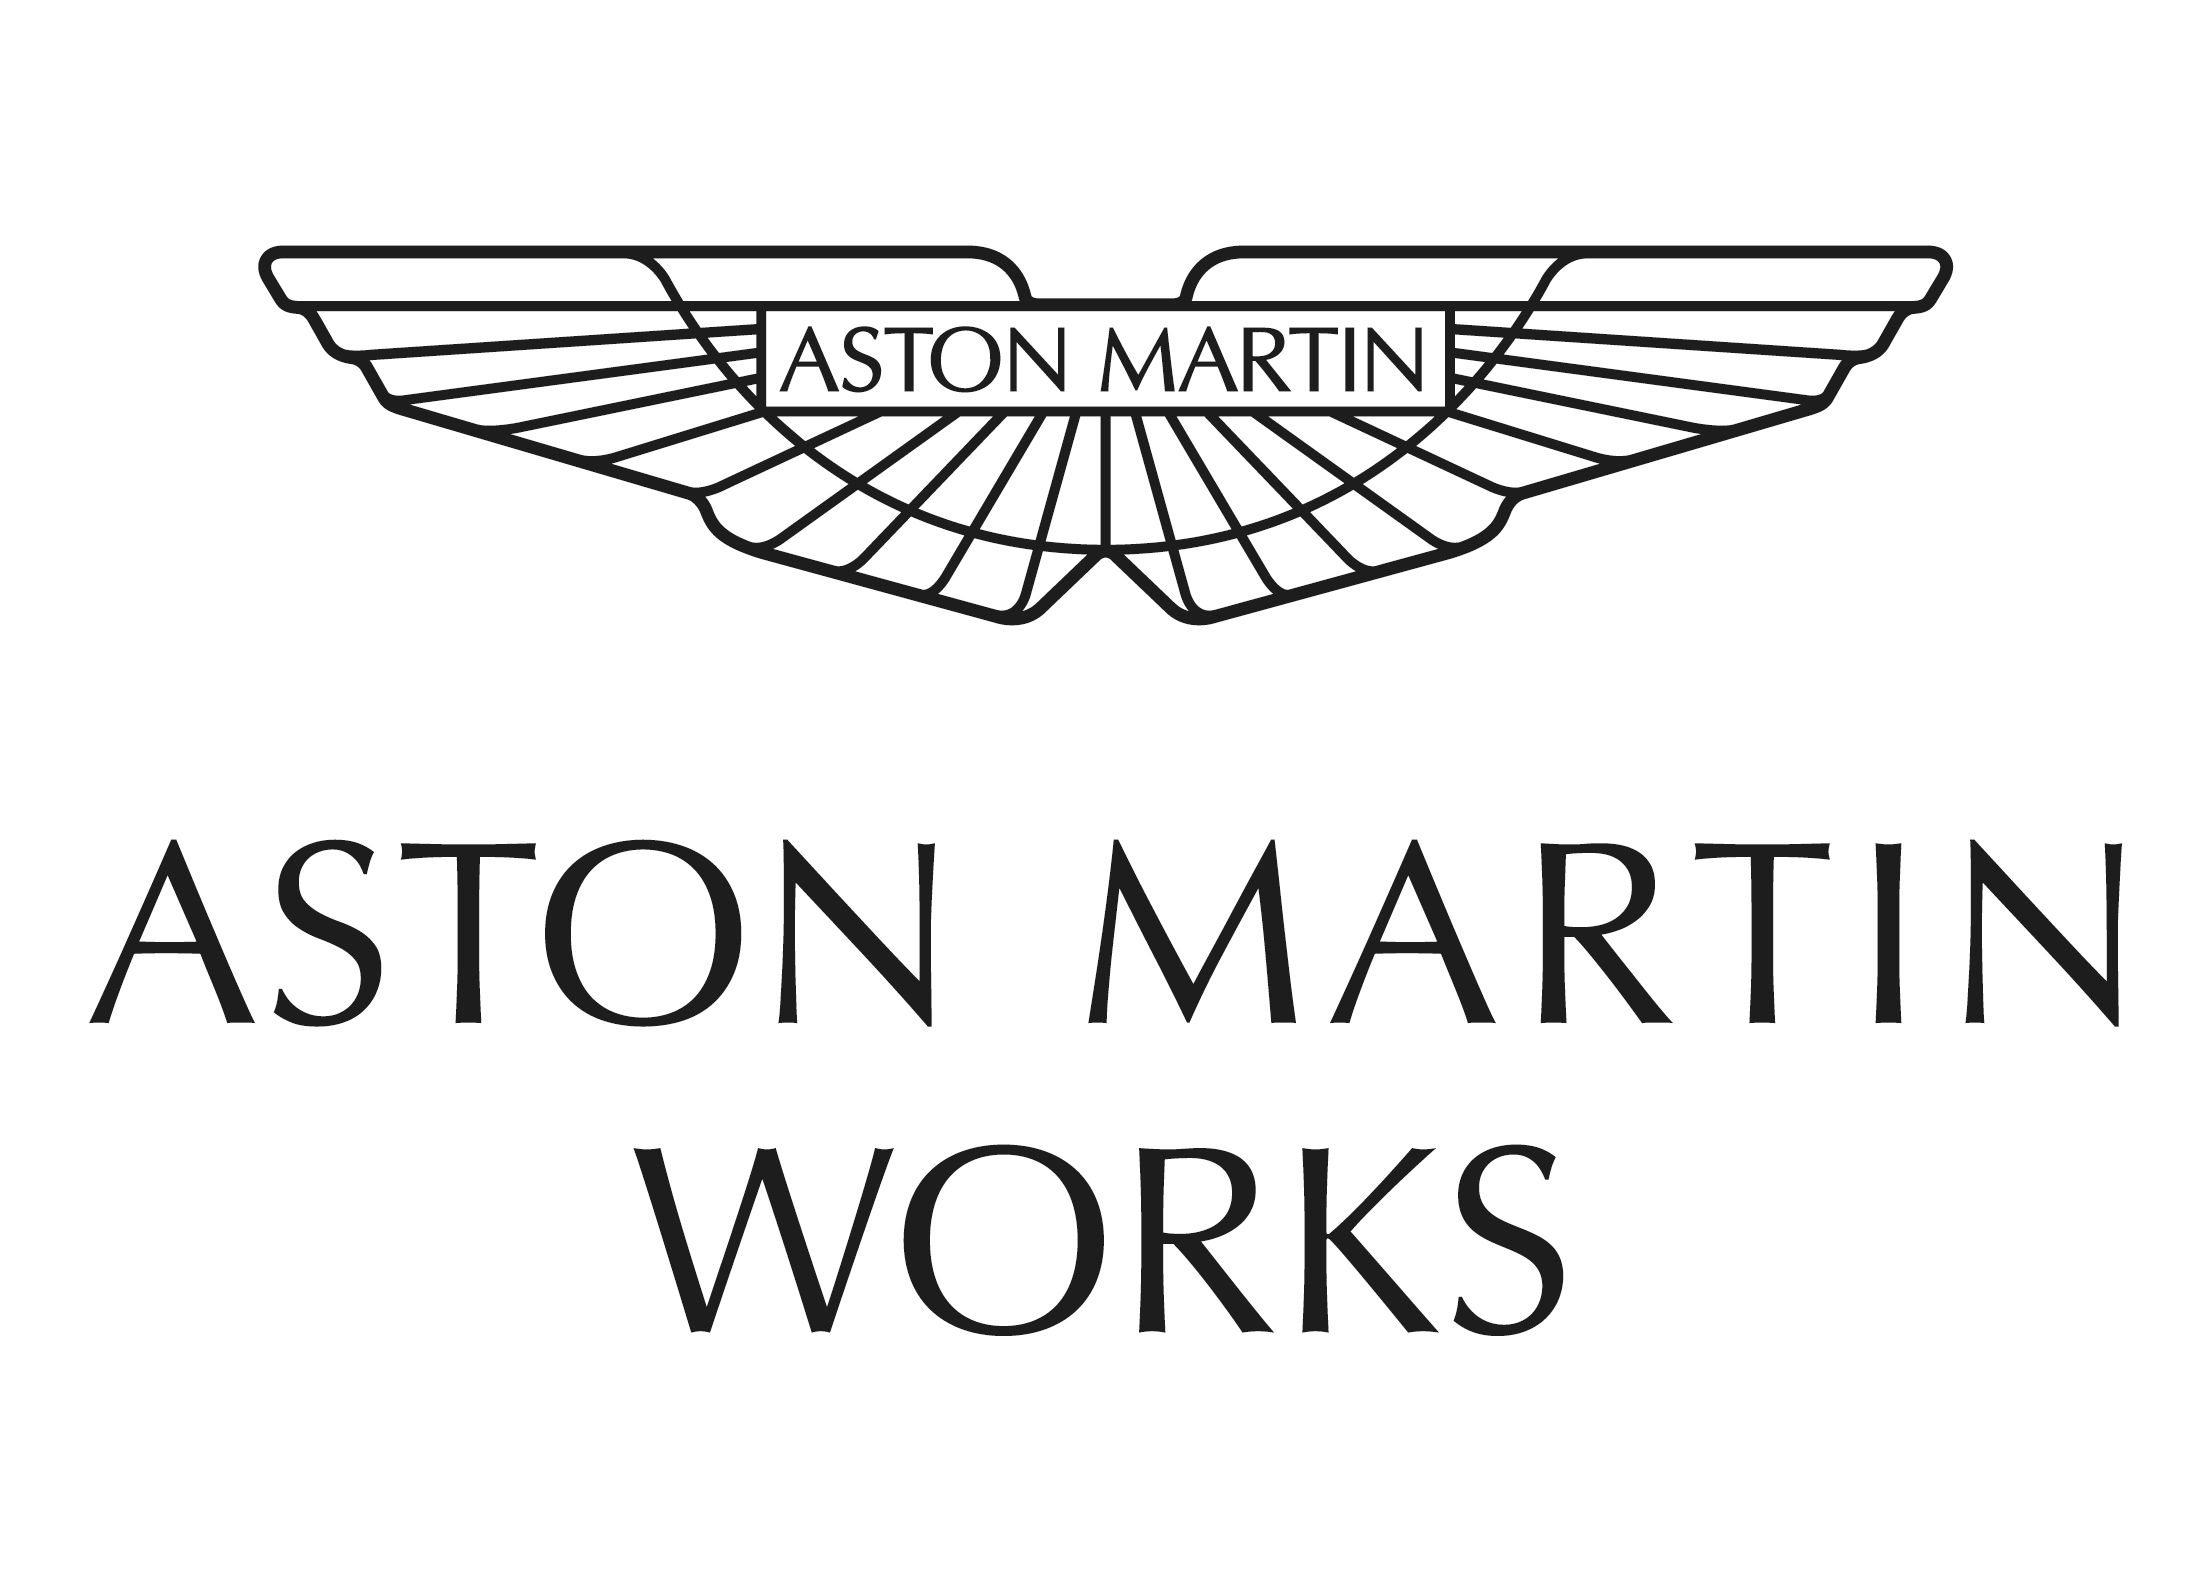 Used Aston Martin DB5 cars for sale with PistonHeads